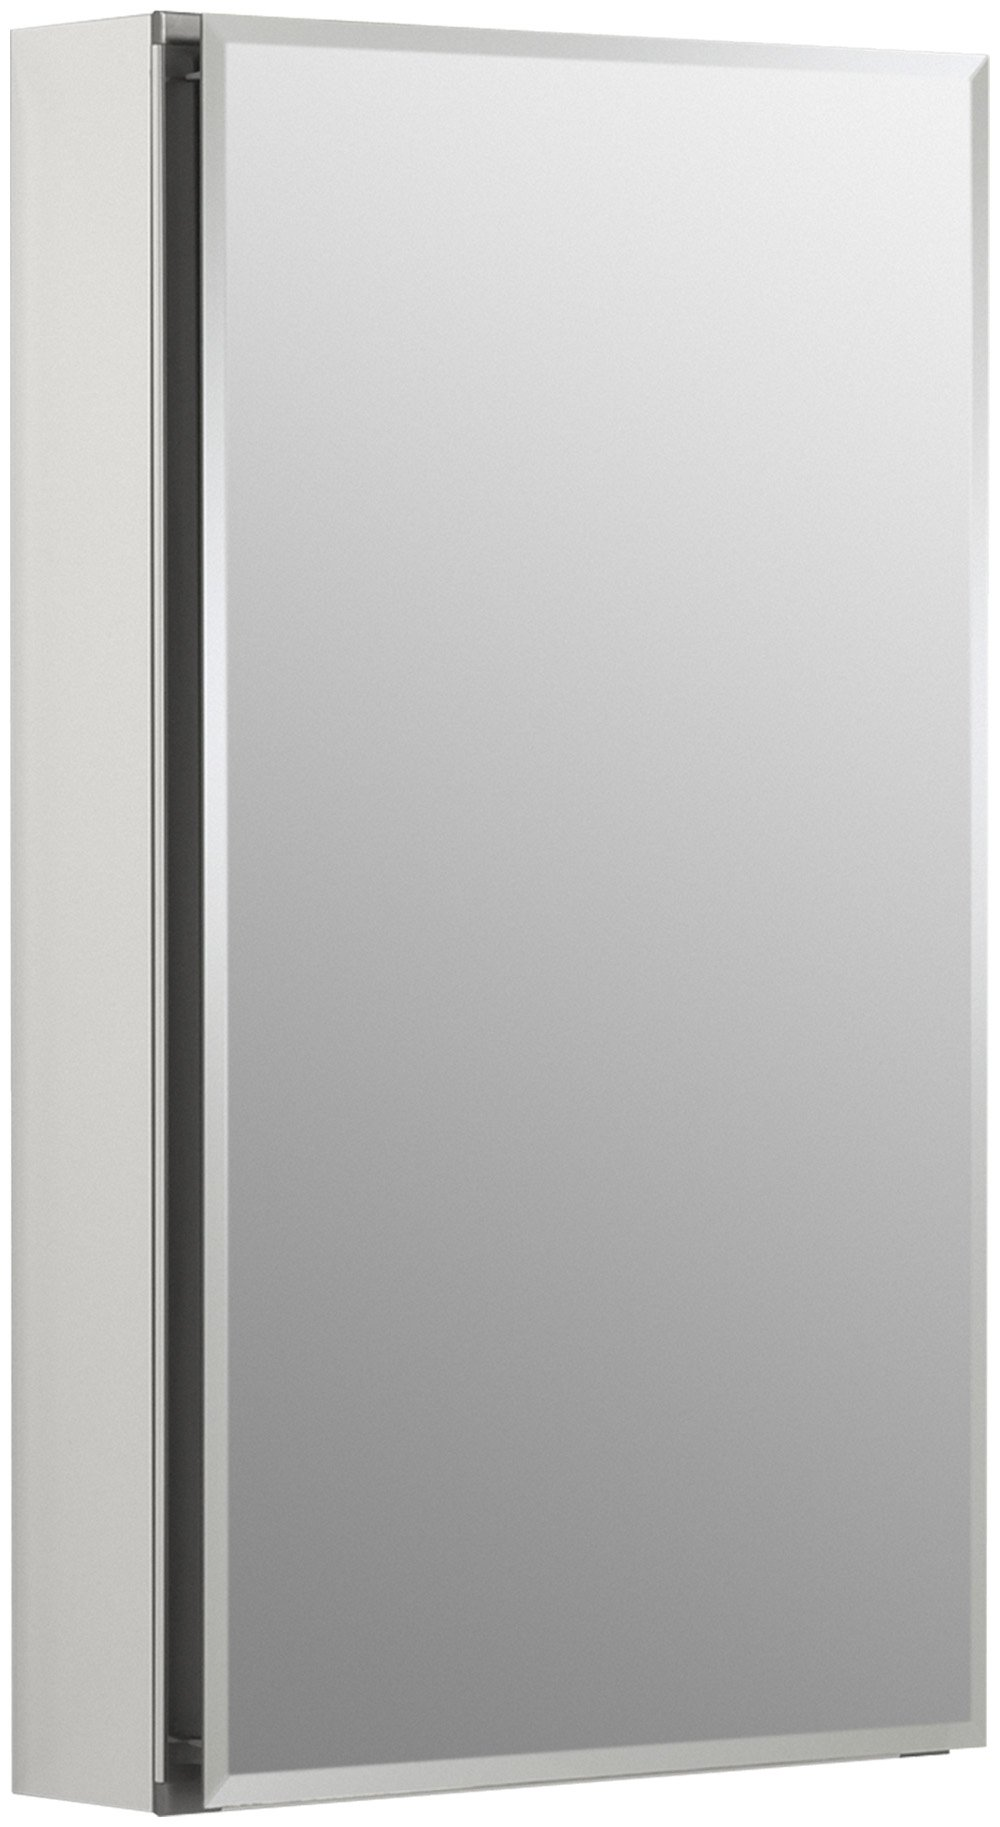 KOHLER K-CB-CLC1526FS Frameless 15 inch x 26 inch Aluminum Bathroom Medicine Cabinet; ; Recess or Surface Mount by Kohler